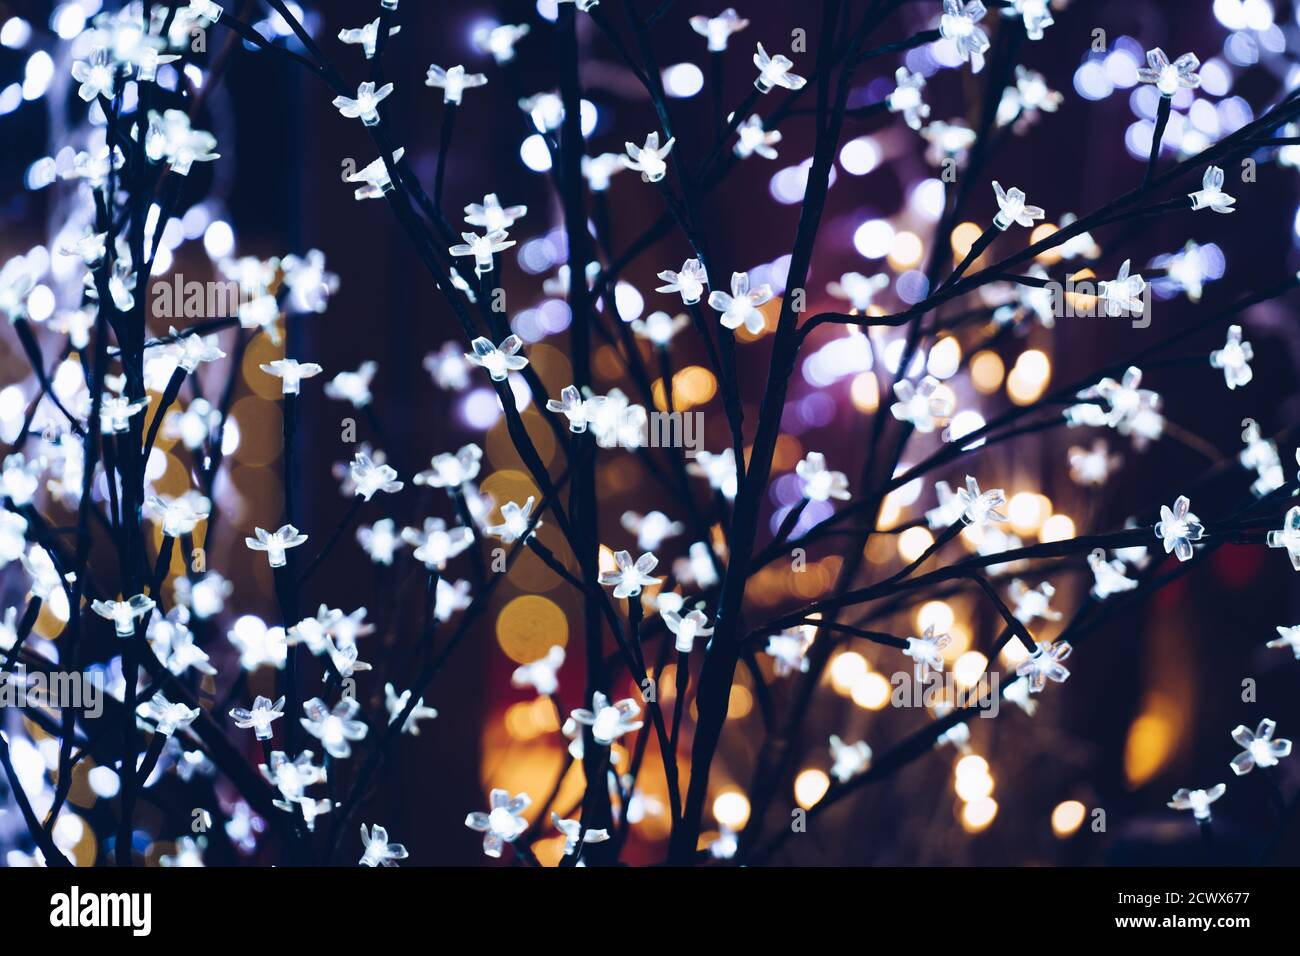 Garlands with defocused lights on winter tree outdoor in the night time. Selective focus Stock Photo